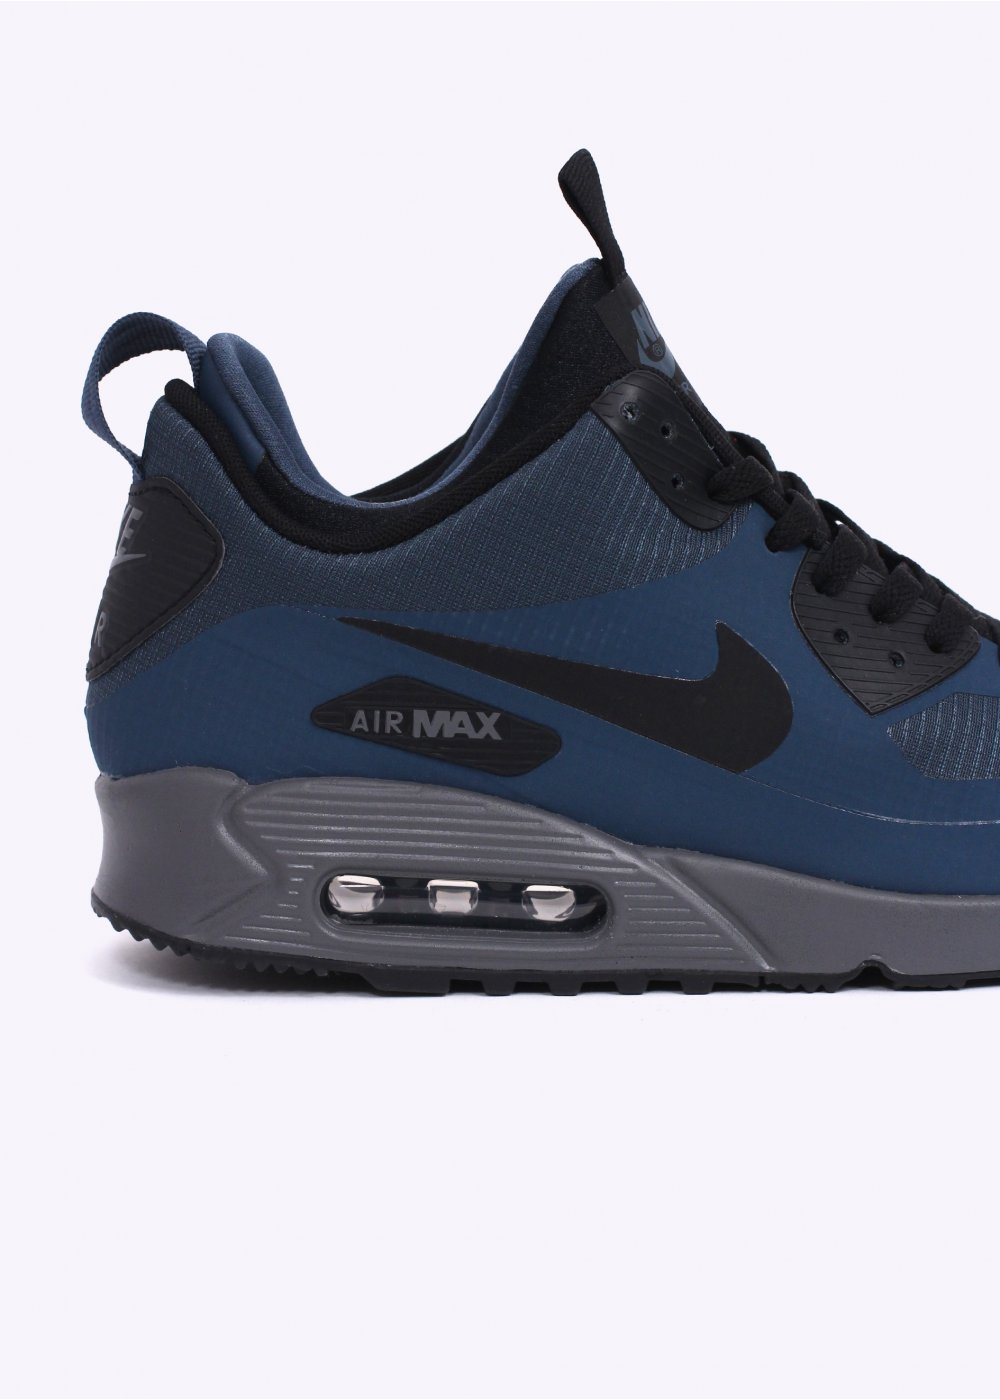 nike air max 90 mid winter sneakerboots squadron blue. Black Bedroom Furniture Sets. Home Design Ideas